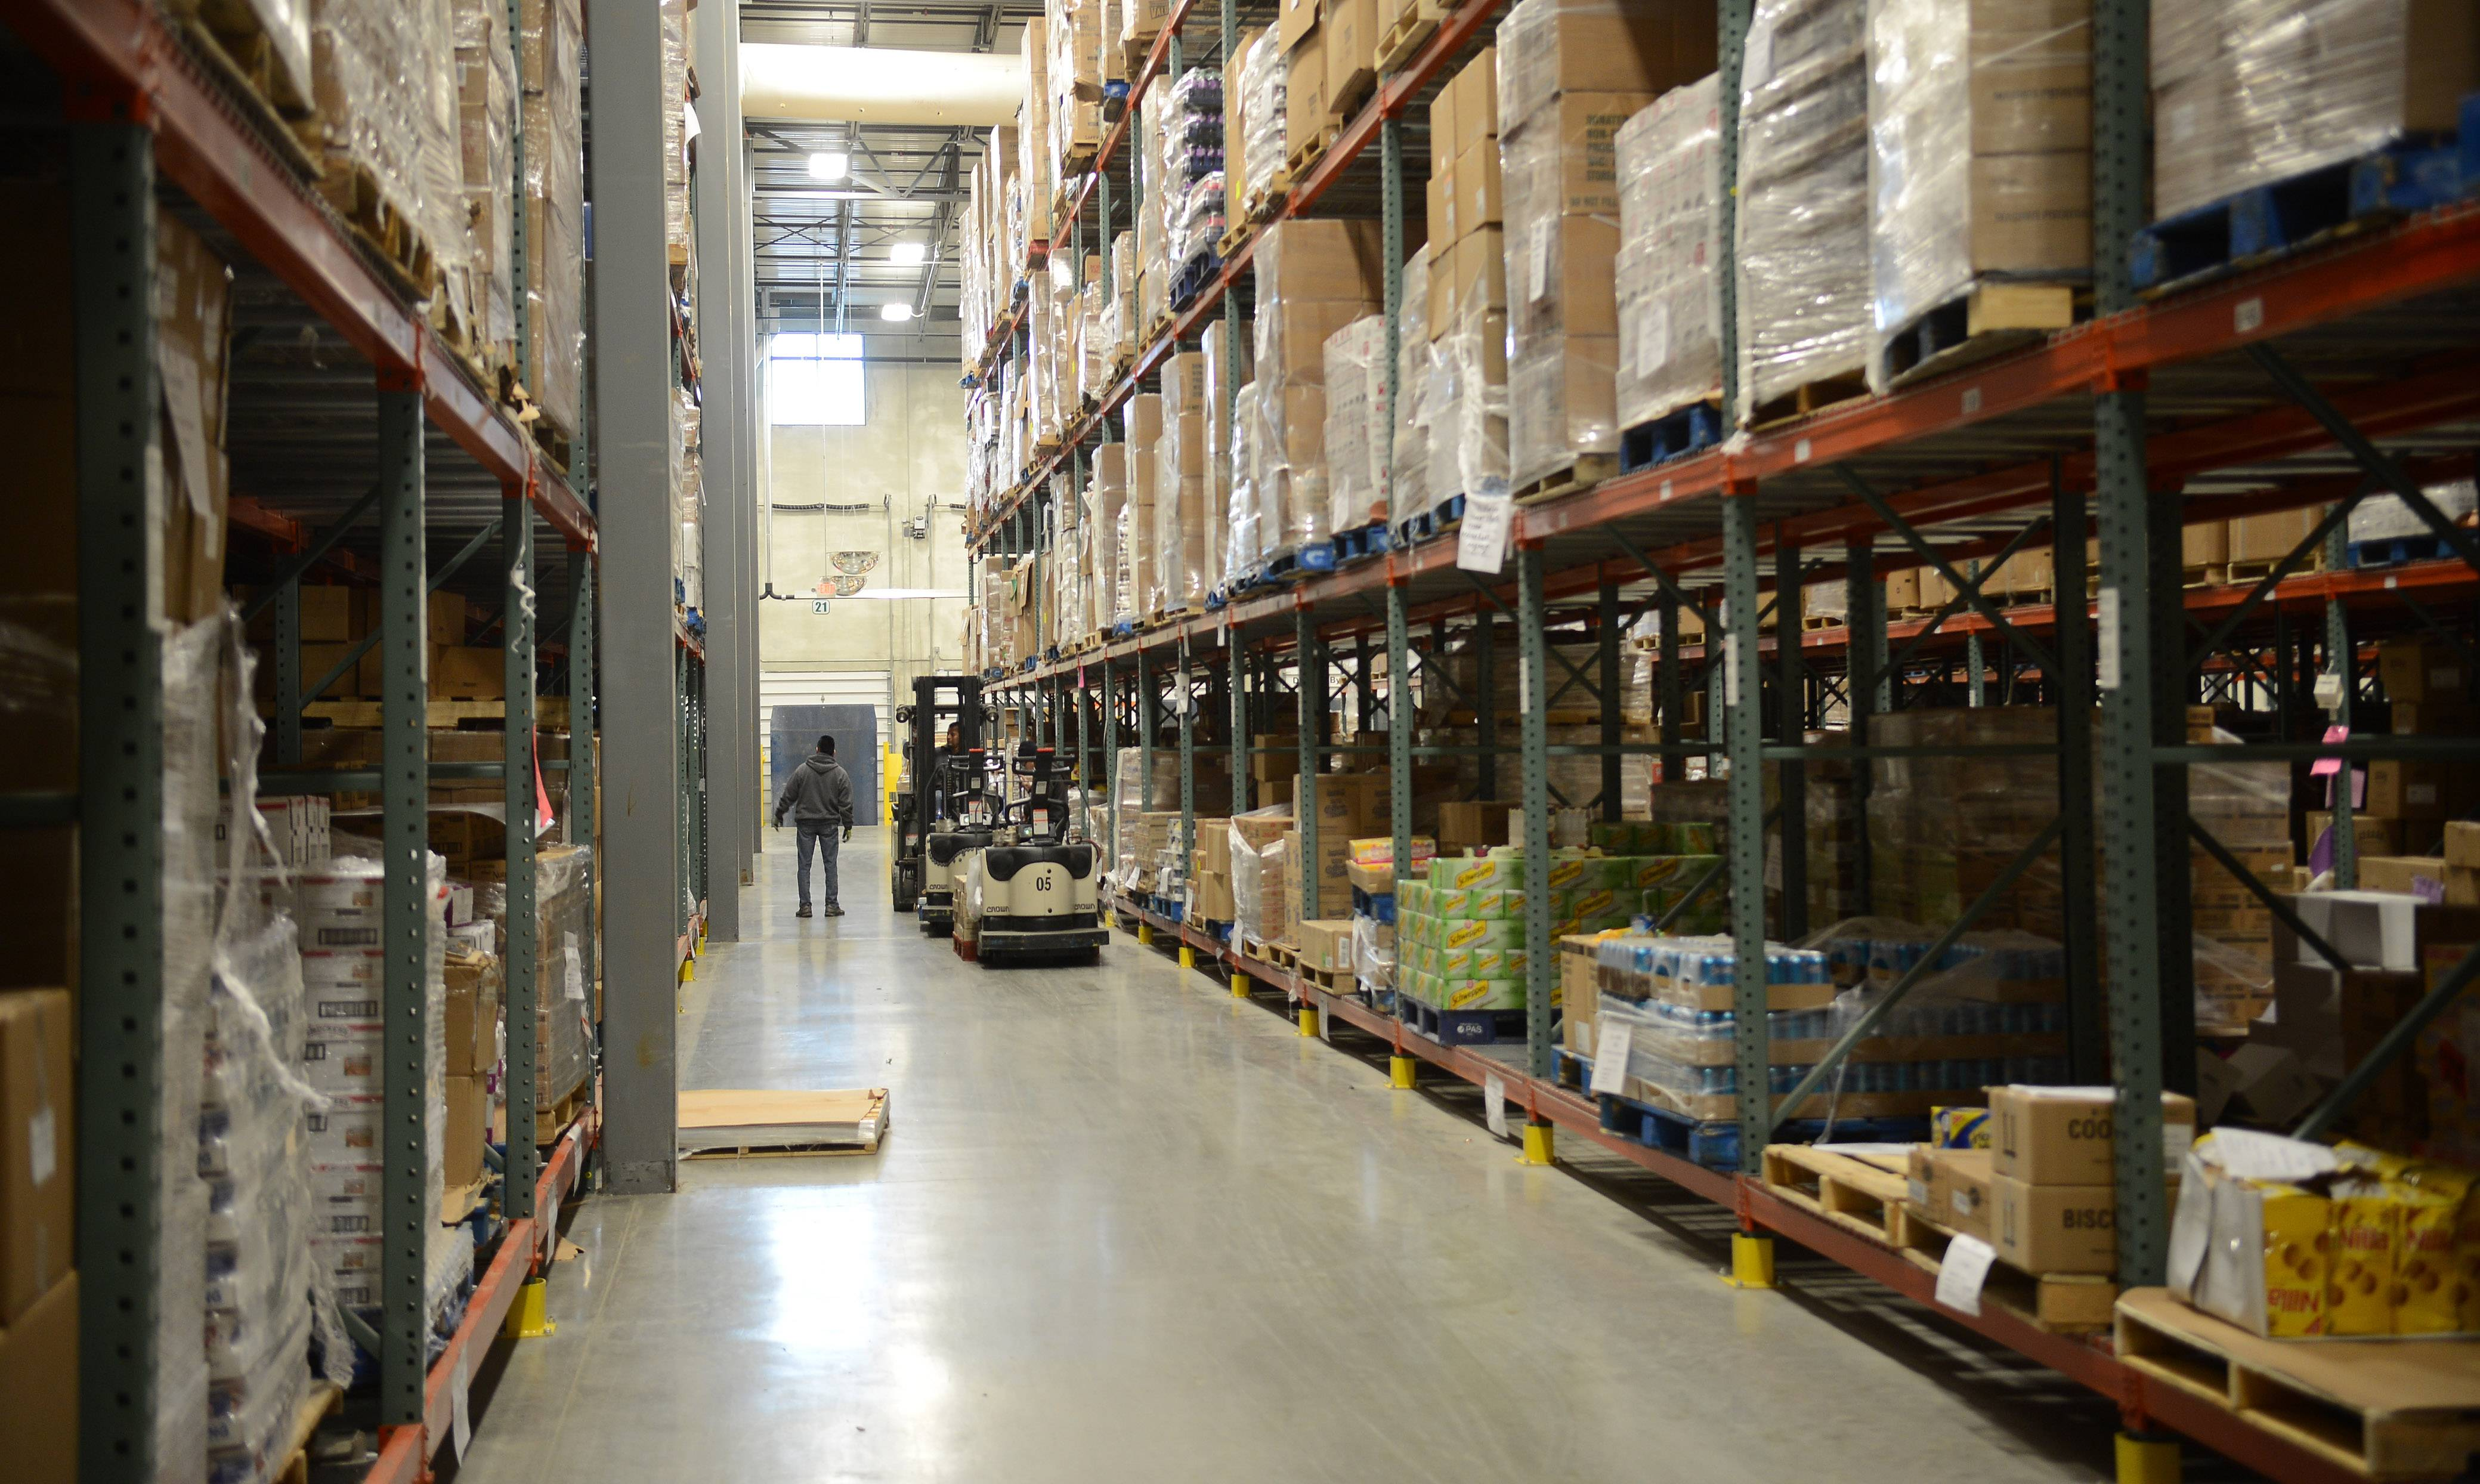 The Northern Illinois Food Bank in Geneva hopes to provide 75 million meals per year to people in need by 2020, as opposed to 50 million meals per year now.